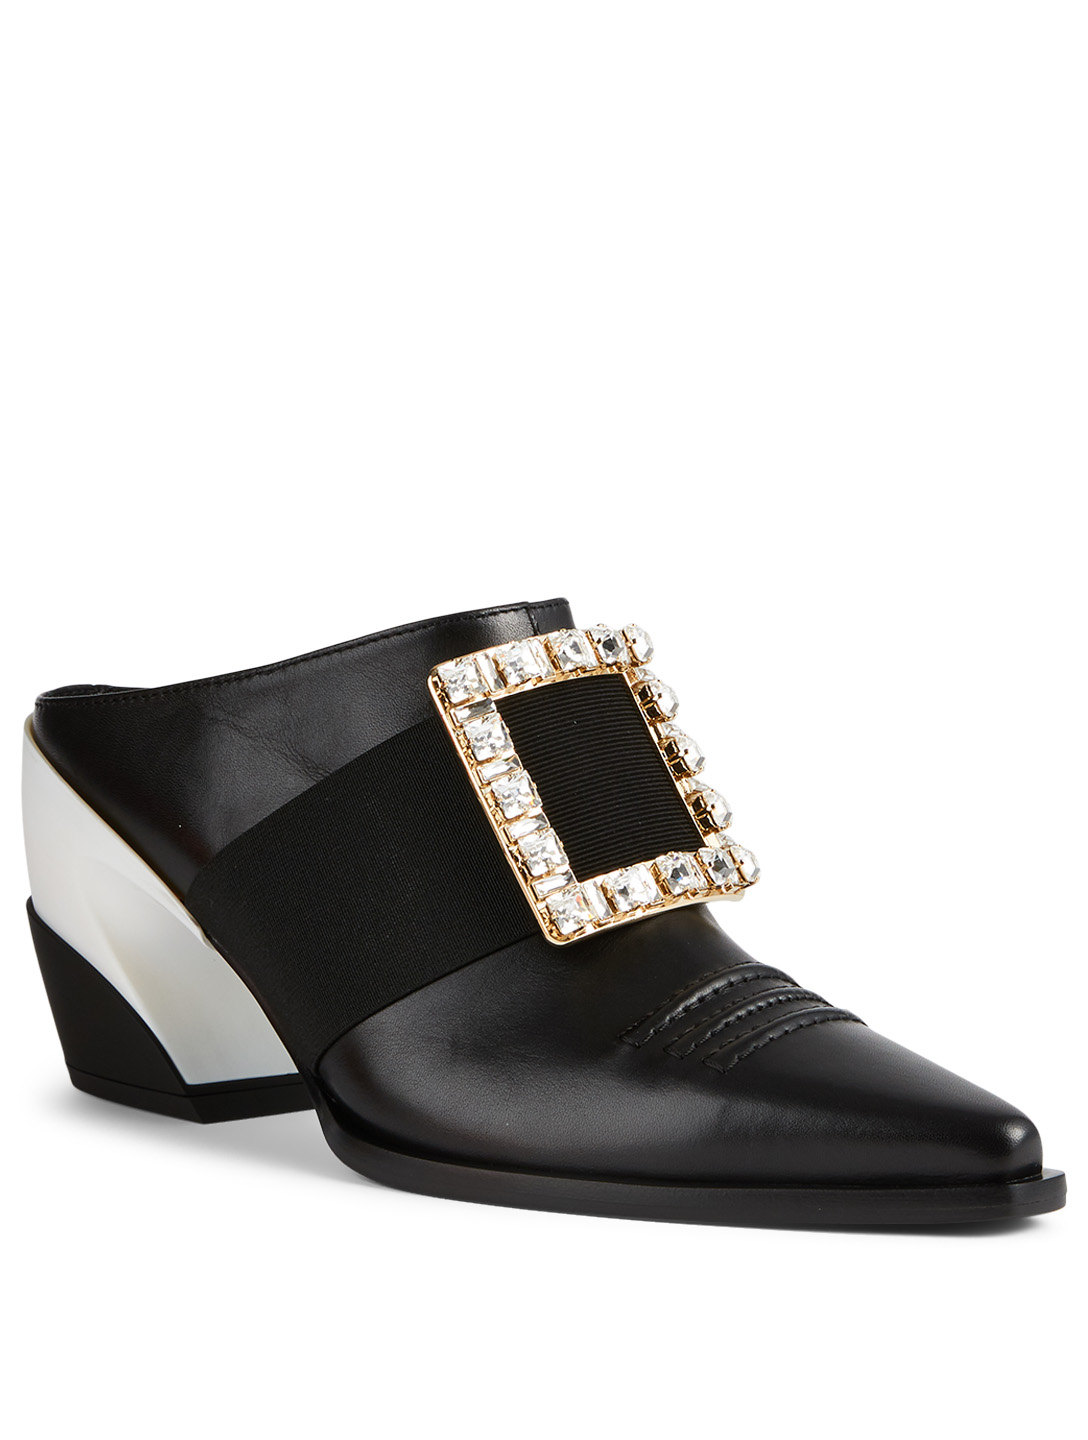 ROGER VIVIER Viv' Tex Strass Buckle 65 Leather Mules Women's Black